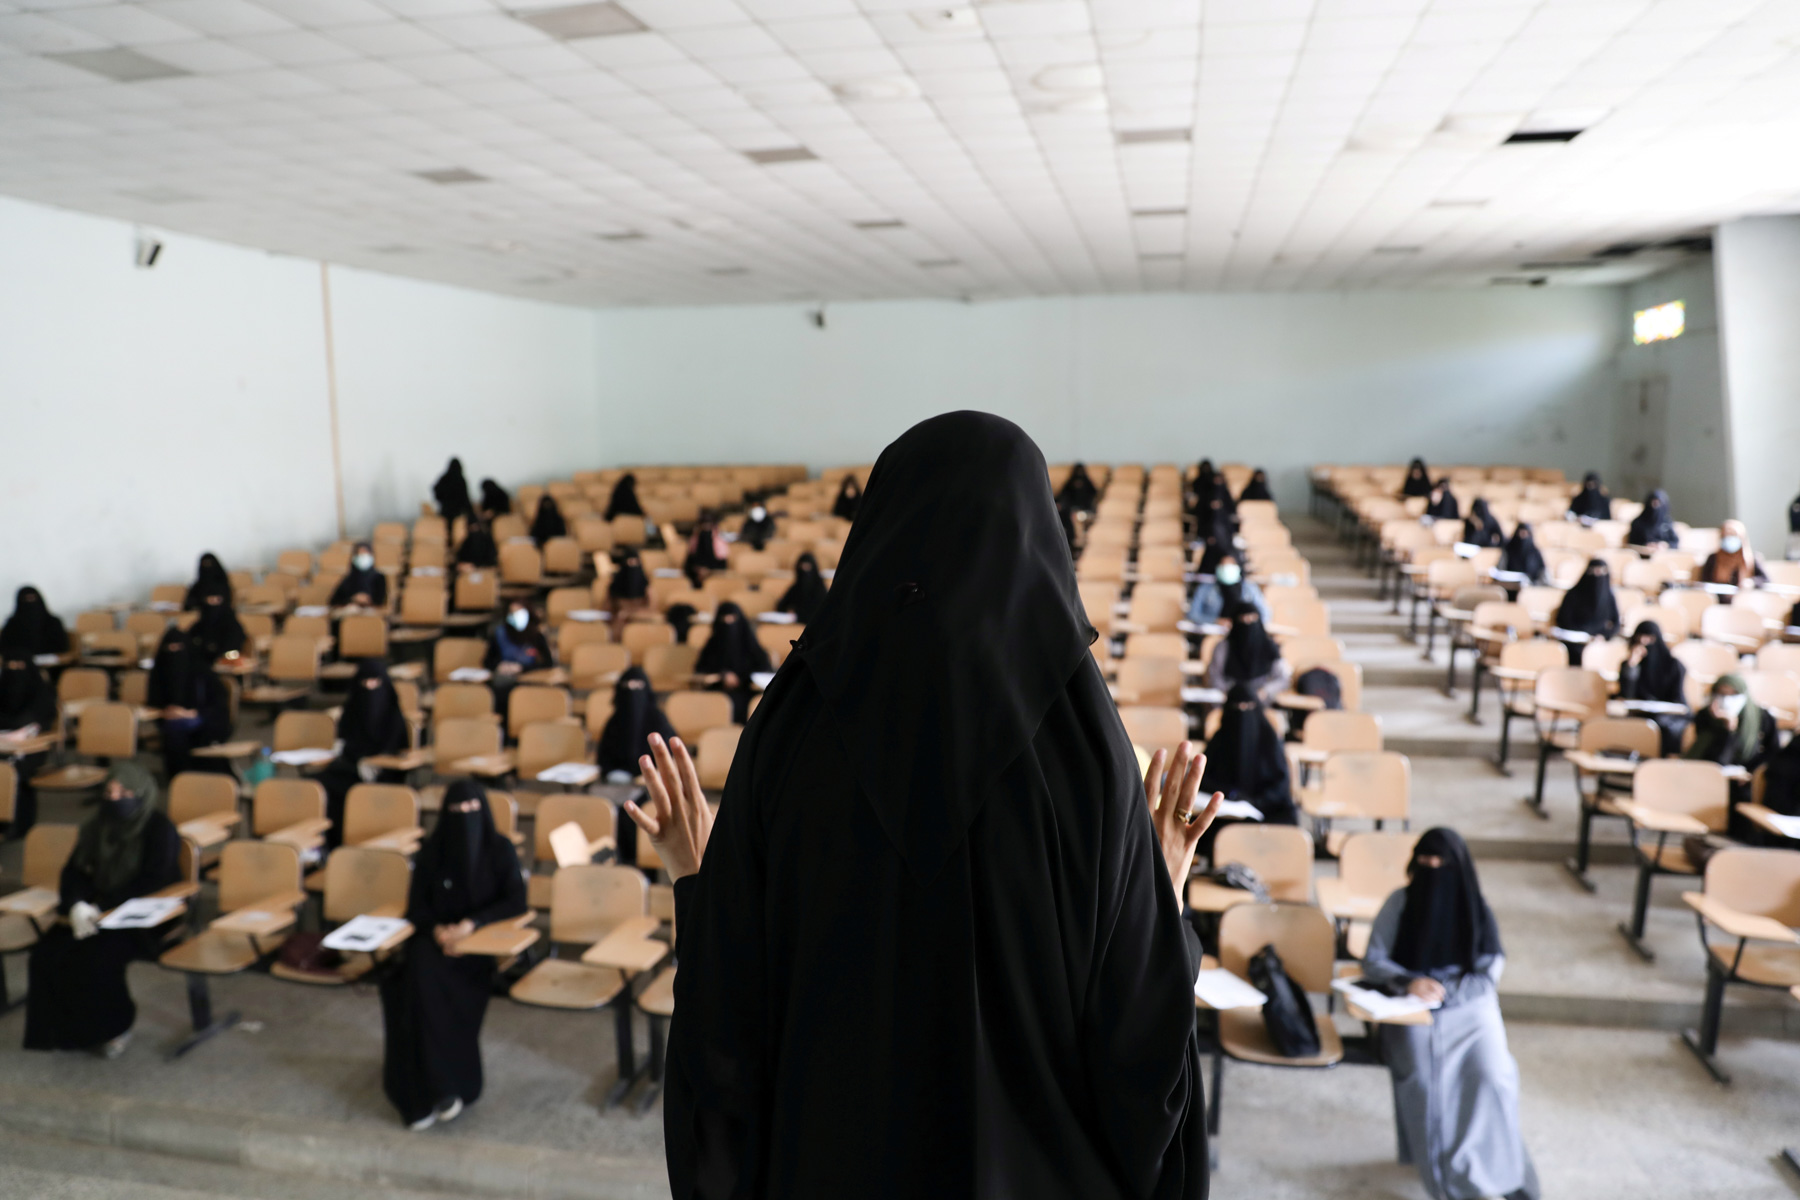 28 March 2020: An instructor addresses volunteers for a coronavirus awareness campaign ahead of the spread of Covid-19 in Sana'a, Yemen. (Photograph by Reuters/ Khaled Abdullah)